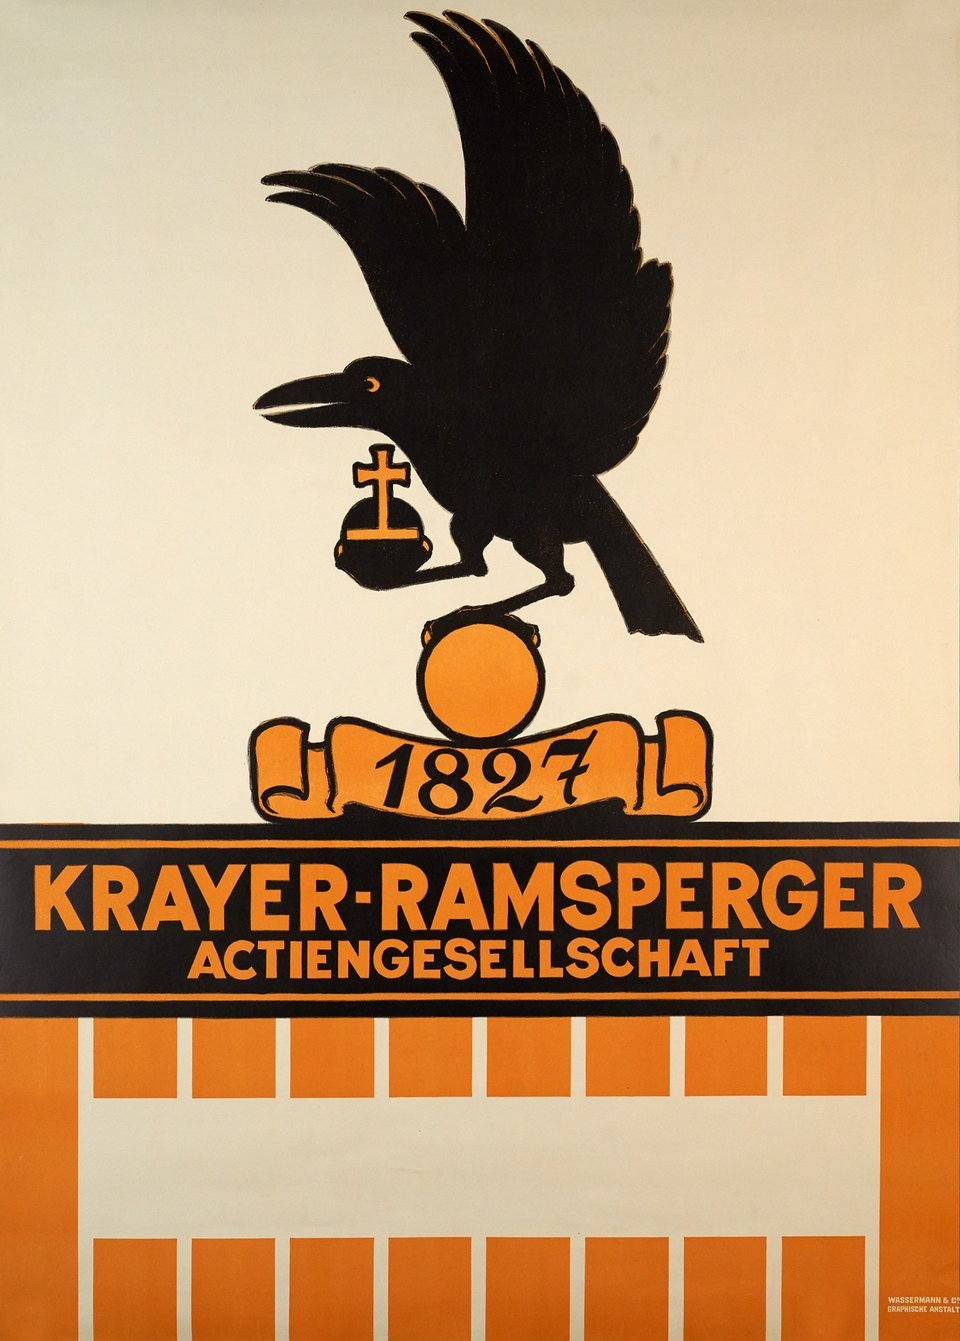 Krayer-Ramsperger Actiengesellschaft 1827 – Vintage poster –  ANONYME – 1928